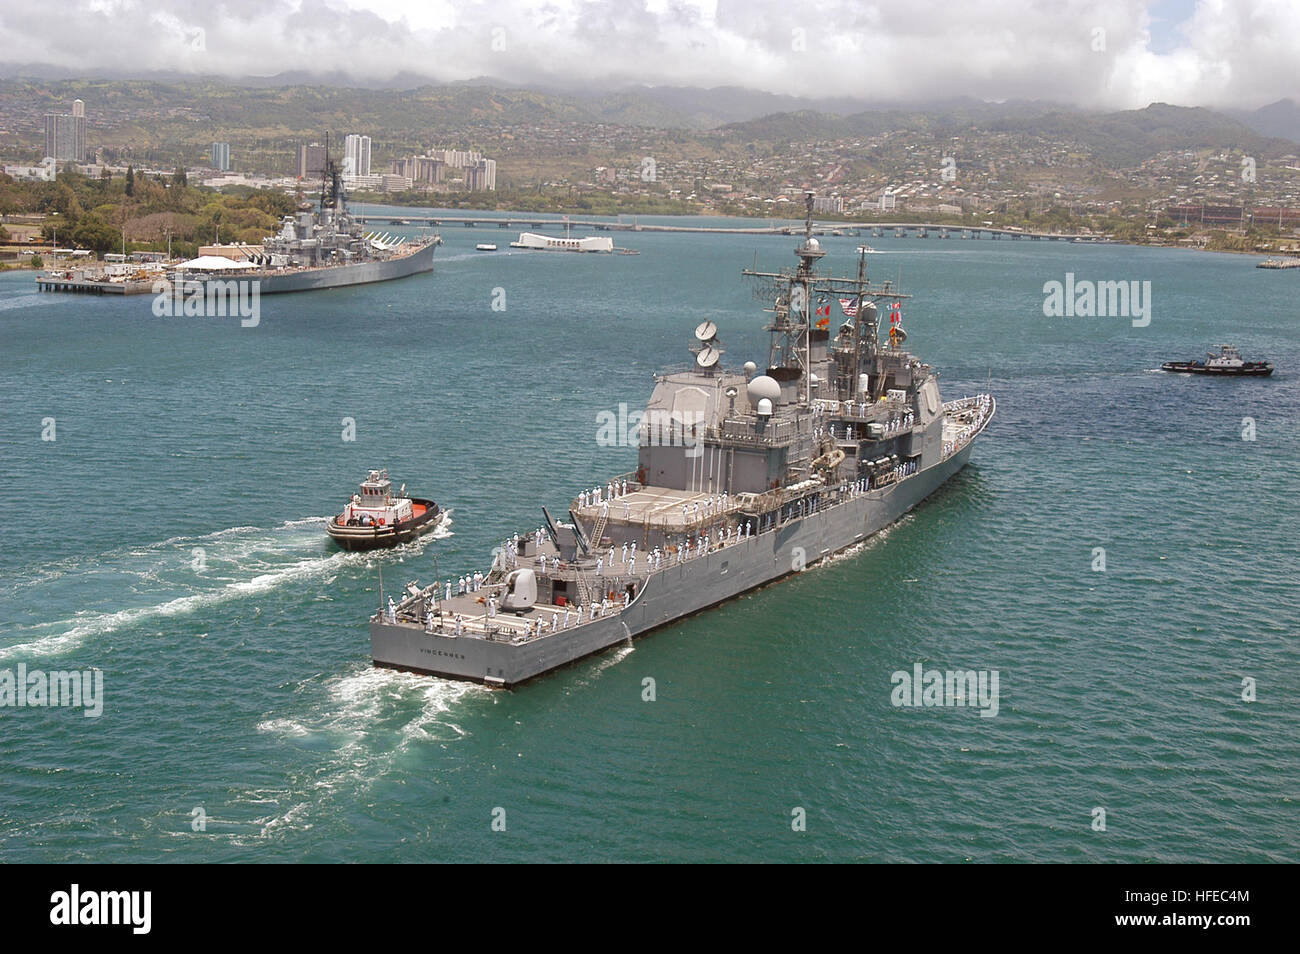 050415-N-8157F-106 Pearl Harbor, Hawaii (April 15, 2005)- The guided-missile cruiser USS Vincennes (CG 49) heads - Stock Image